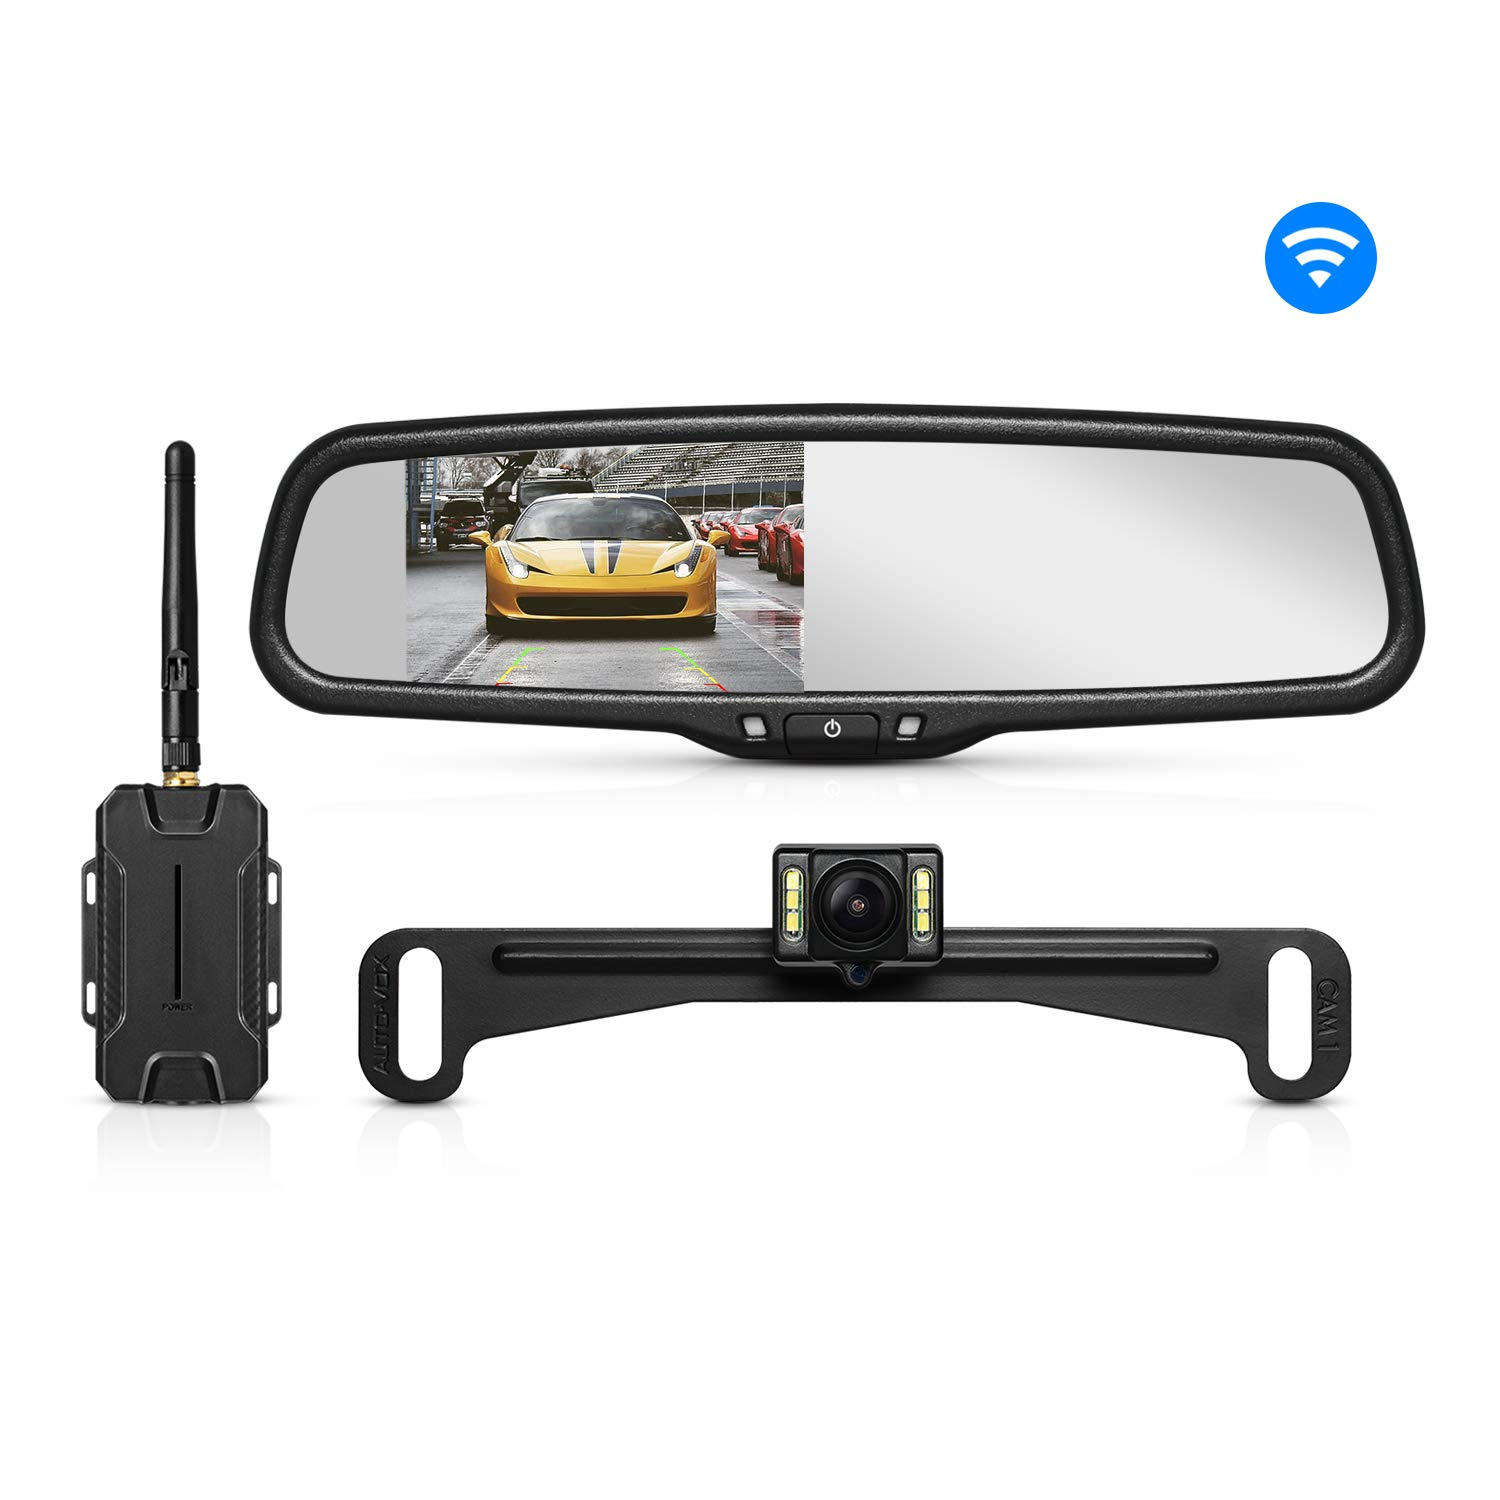 AUTO VOX T1400 Upgrade Wireless Backup Camera Kit, Easy Installation with No Wiring, No Interference, OEM Look with IP 68 Waterproof Super Night Vision Rear View Camera by AUTO-VOX